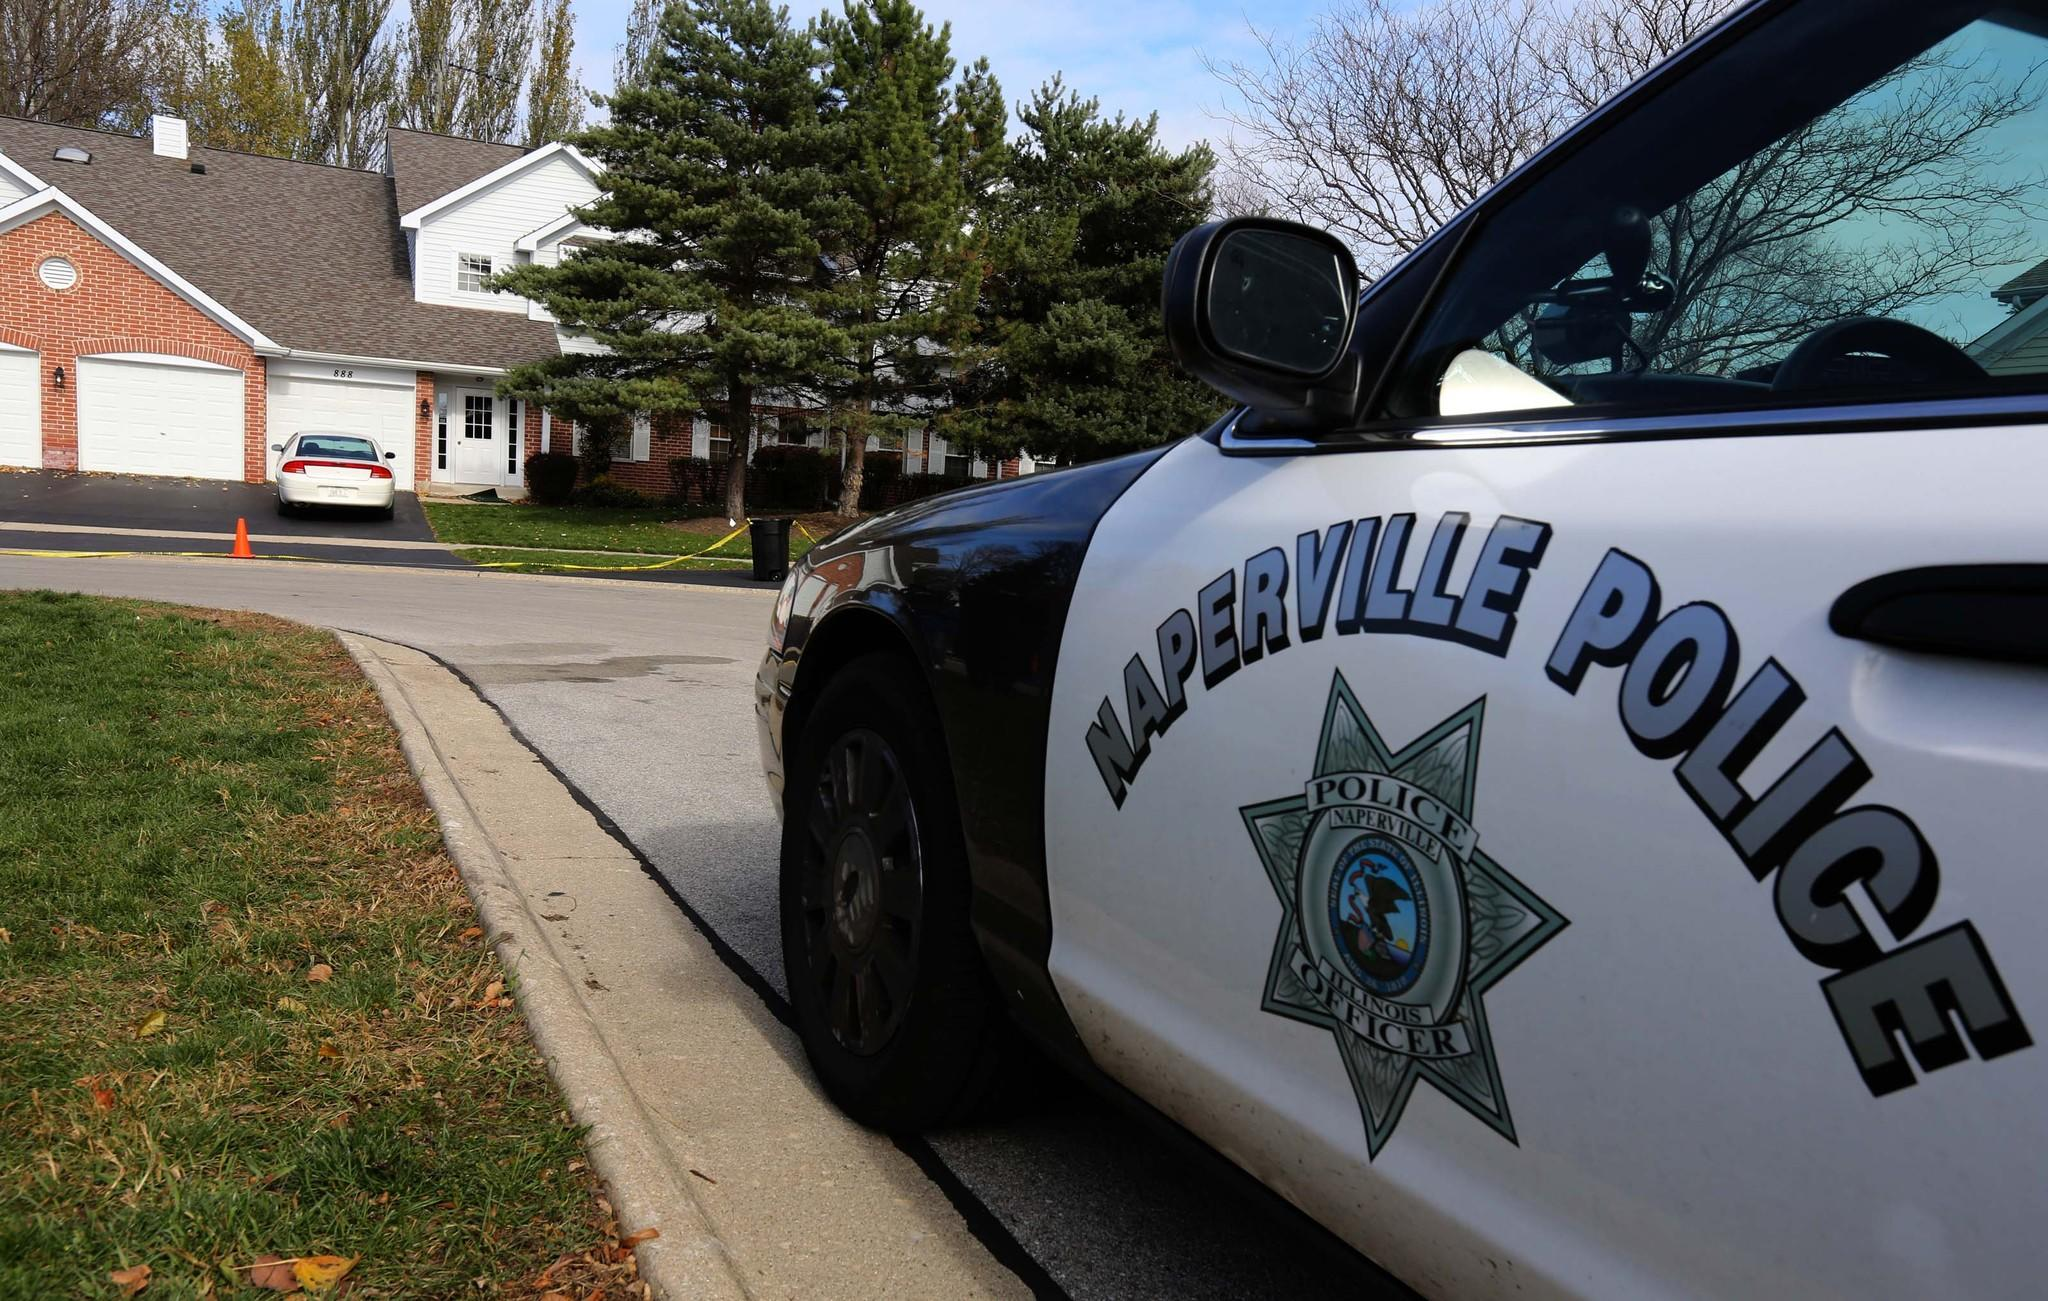 Naperville ranked second on a list of the most DUI arrests outside Chicago for 2013.